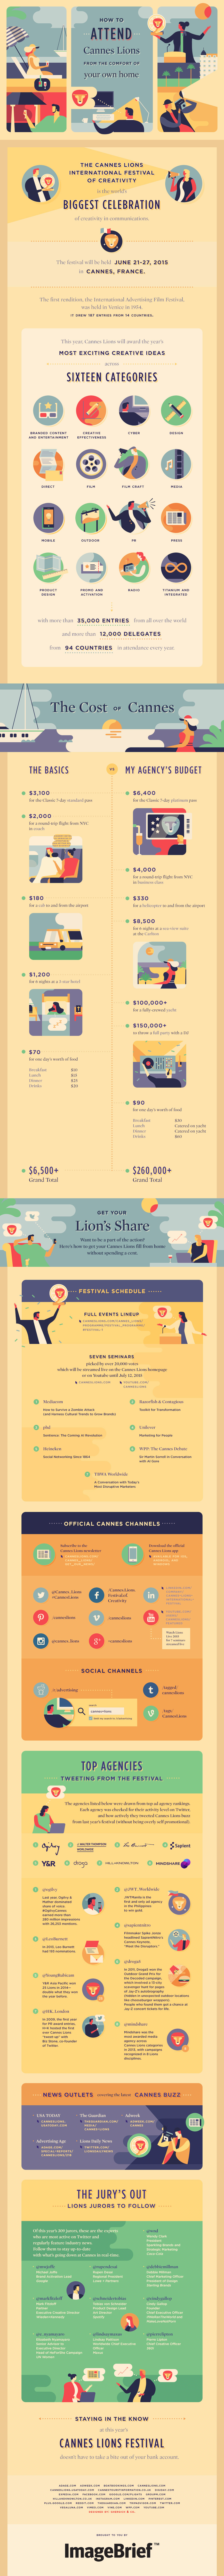 cannes-lions-infographic-3